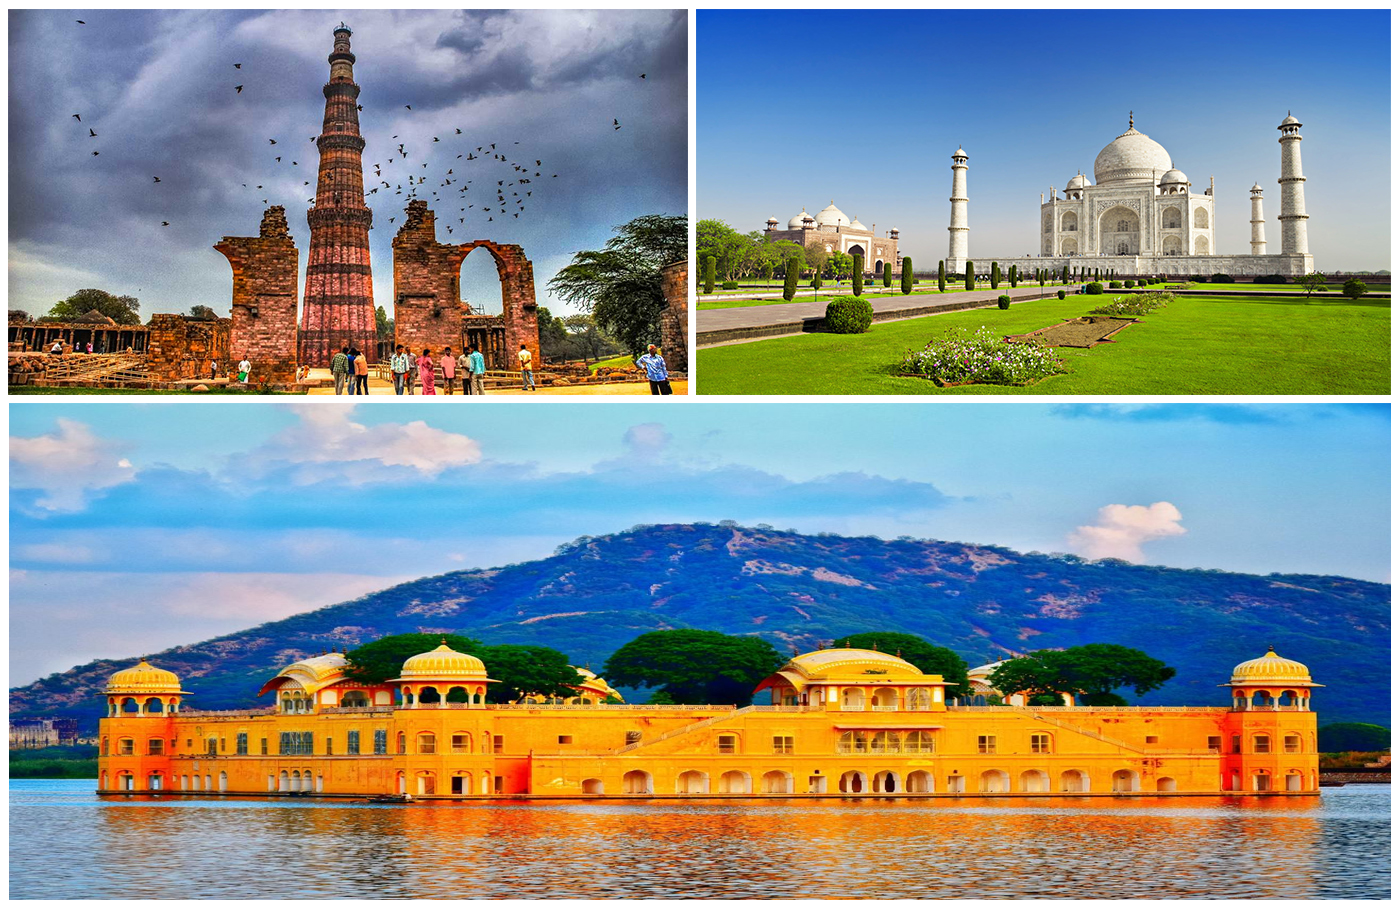 Delhi-Agra-Jaipur, the tourist corridor often referred to as the Golden Triangle, is one of the best cultural tourism circuits in the world.